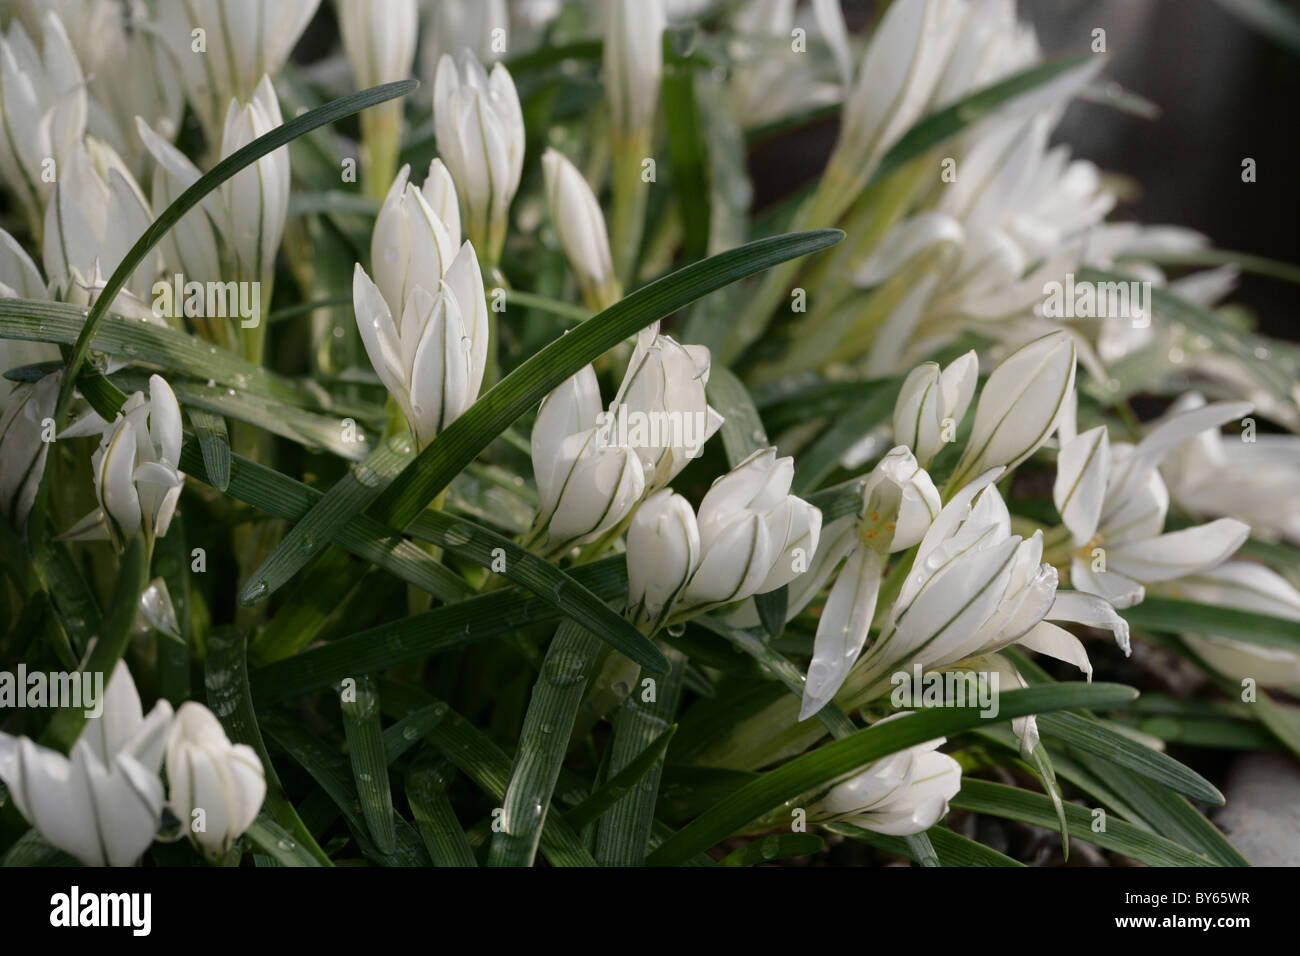 Starflower, Ipheion sessile, Liliaceae, Chile and Uruguay, South America. Syn. Tristagma sessile. Stock Photo